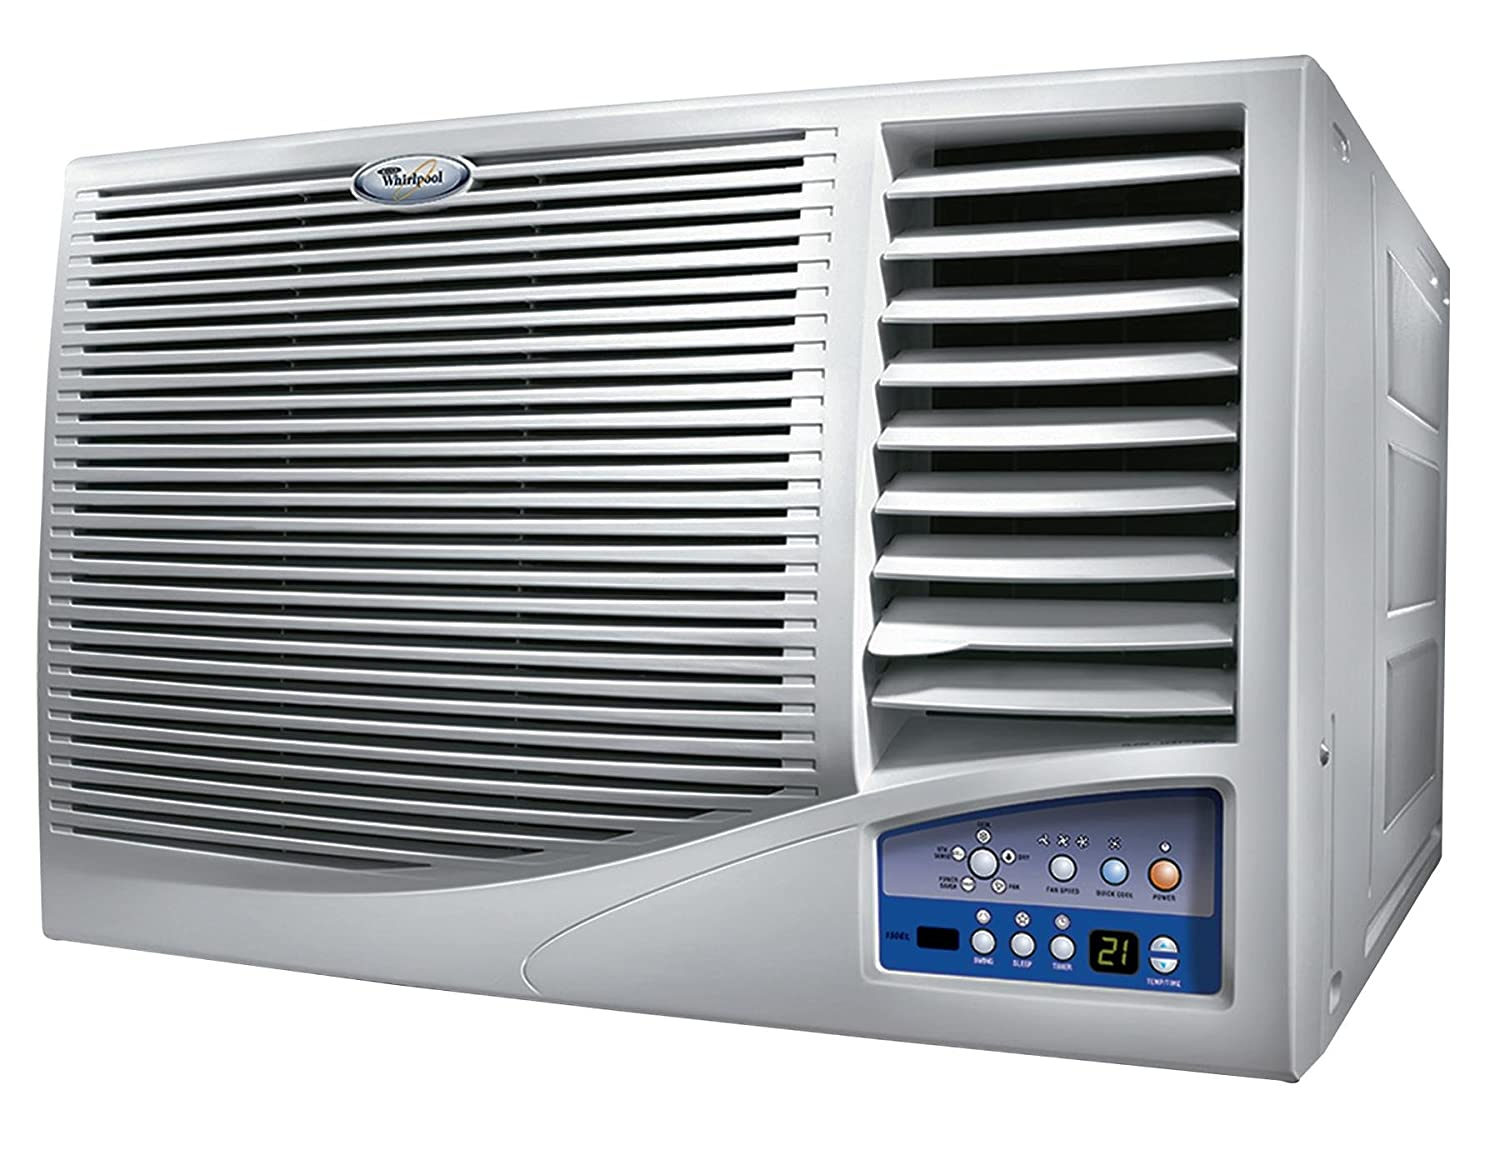 Whirlpool Magicool Platinum V Window Ac   Star Rating White Copper Amazon In Home Kitchen